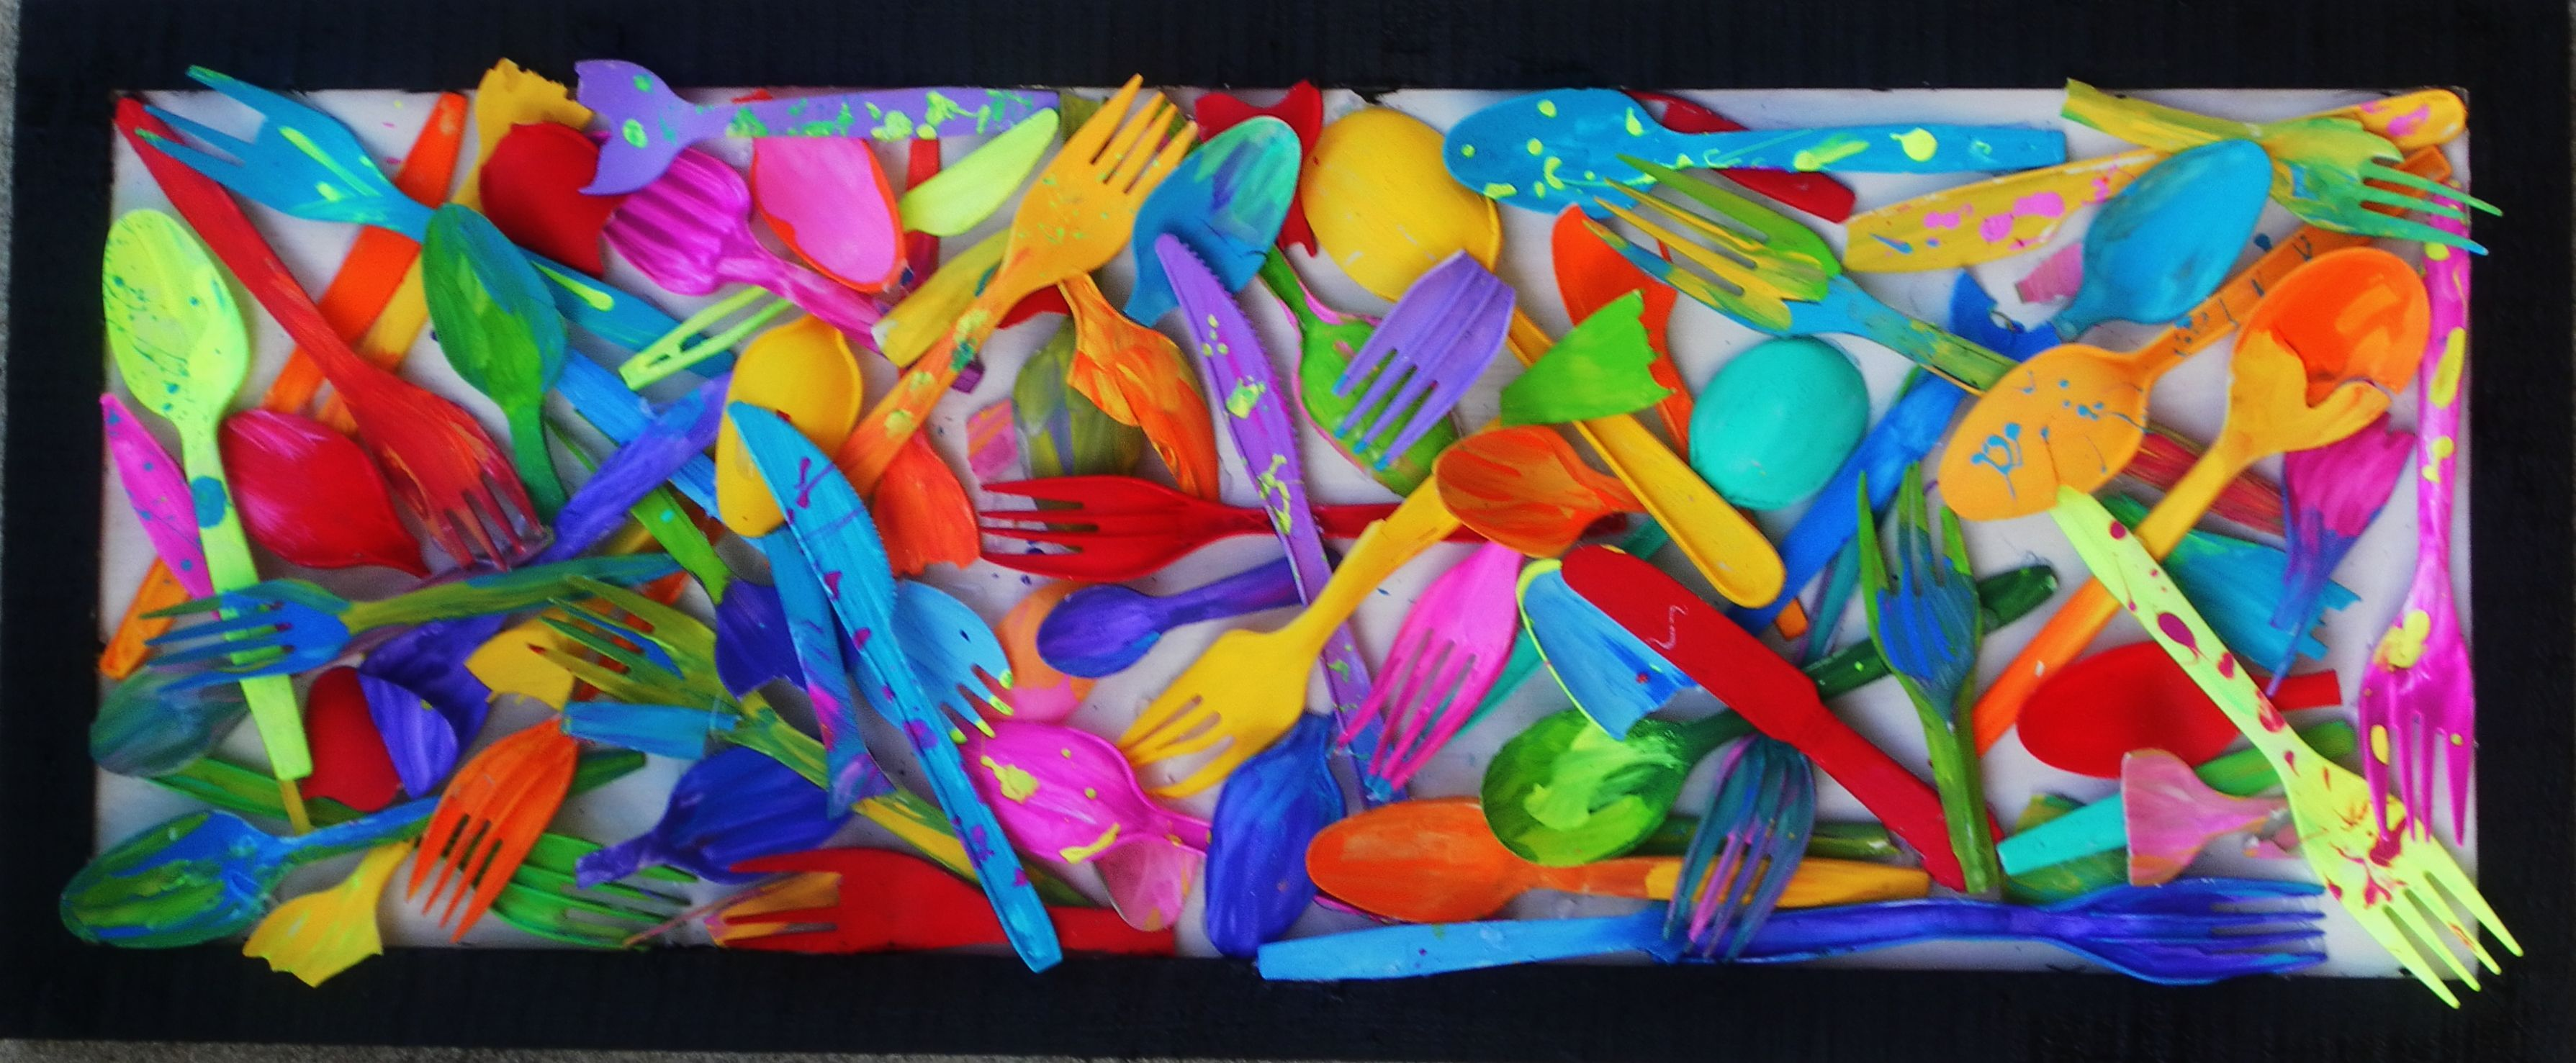 All these plastic utensils were found on the beach and repainted and glued to show artsy them up.